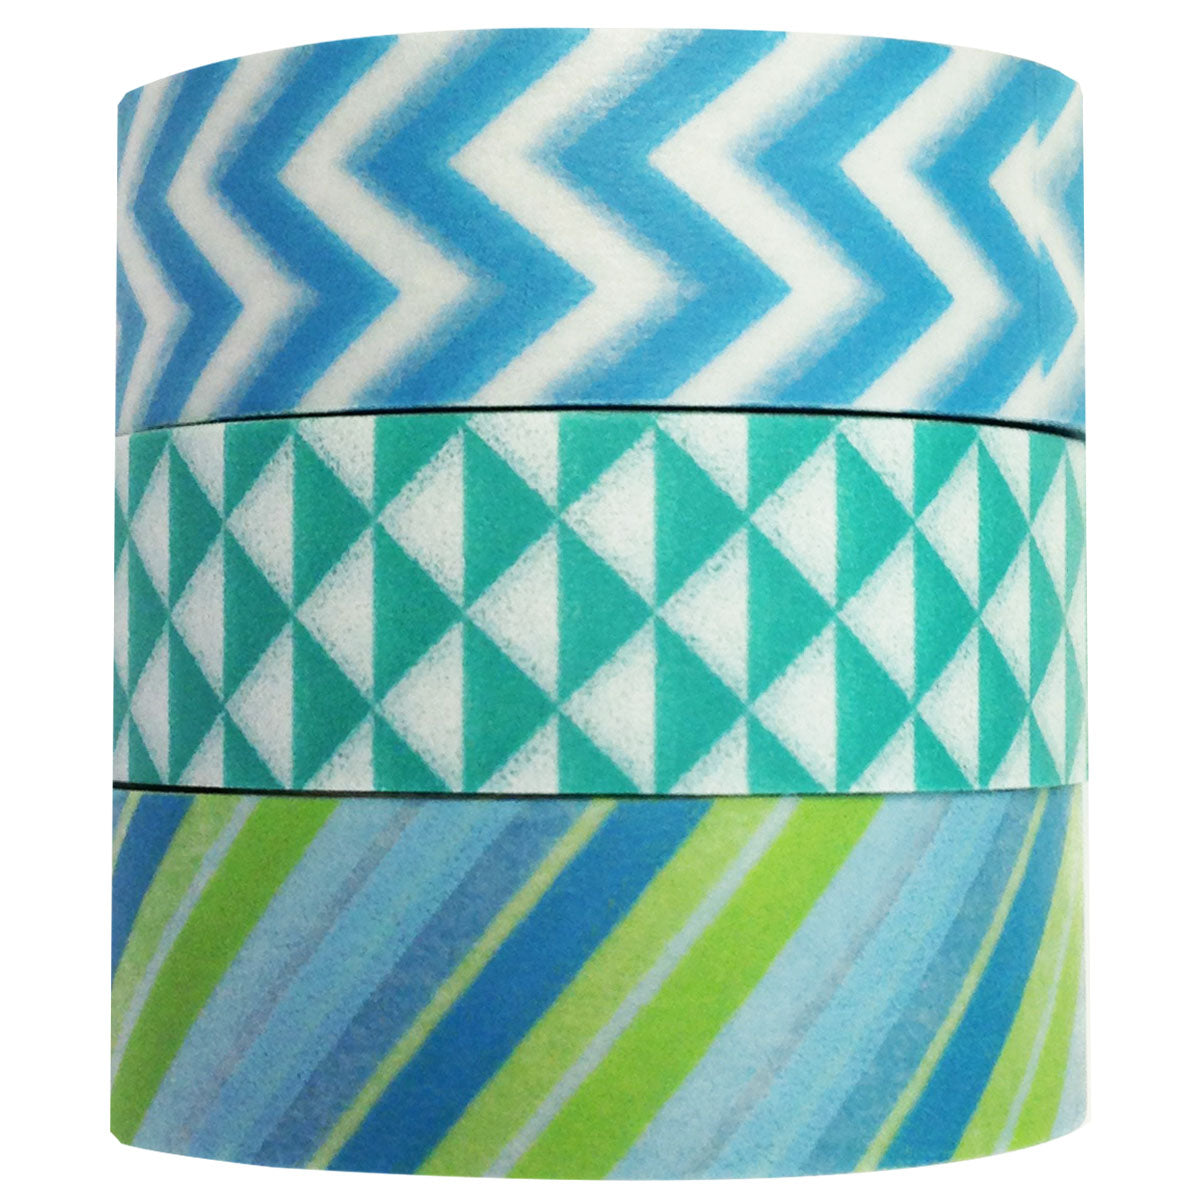 Wrapables Floating Iceberg Japanese Washi Masking Tape (set of 3)